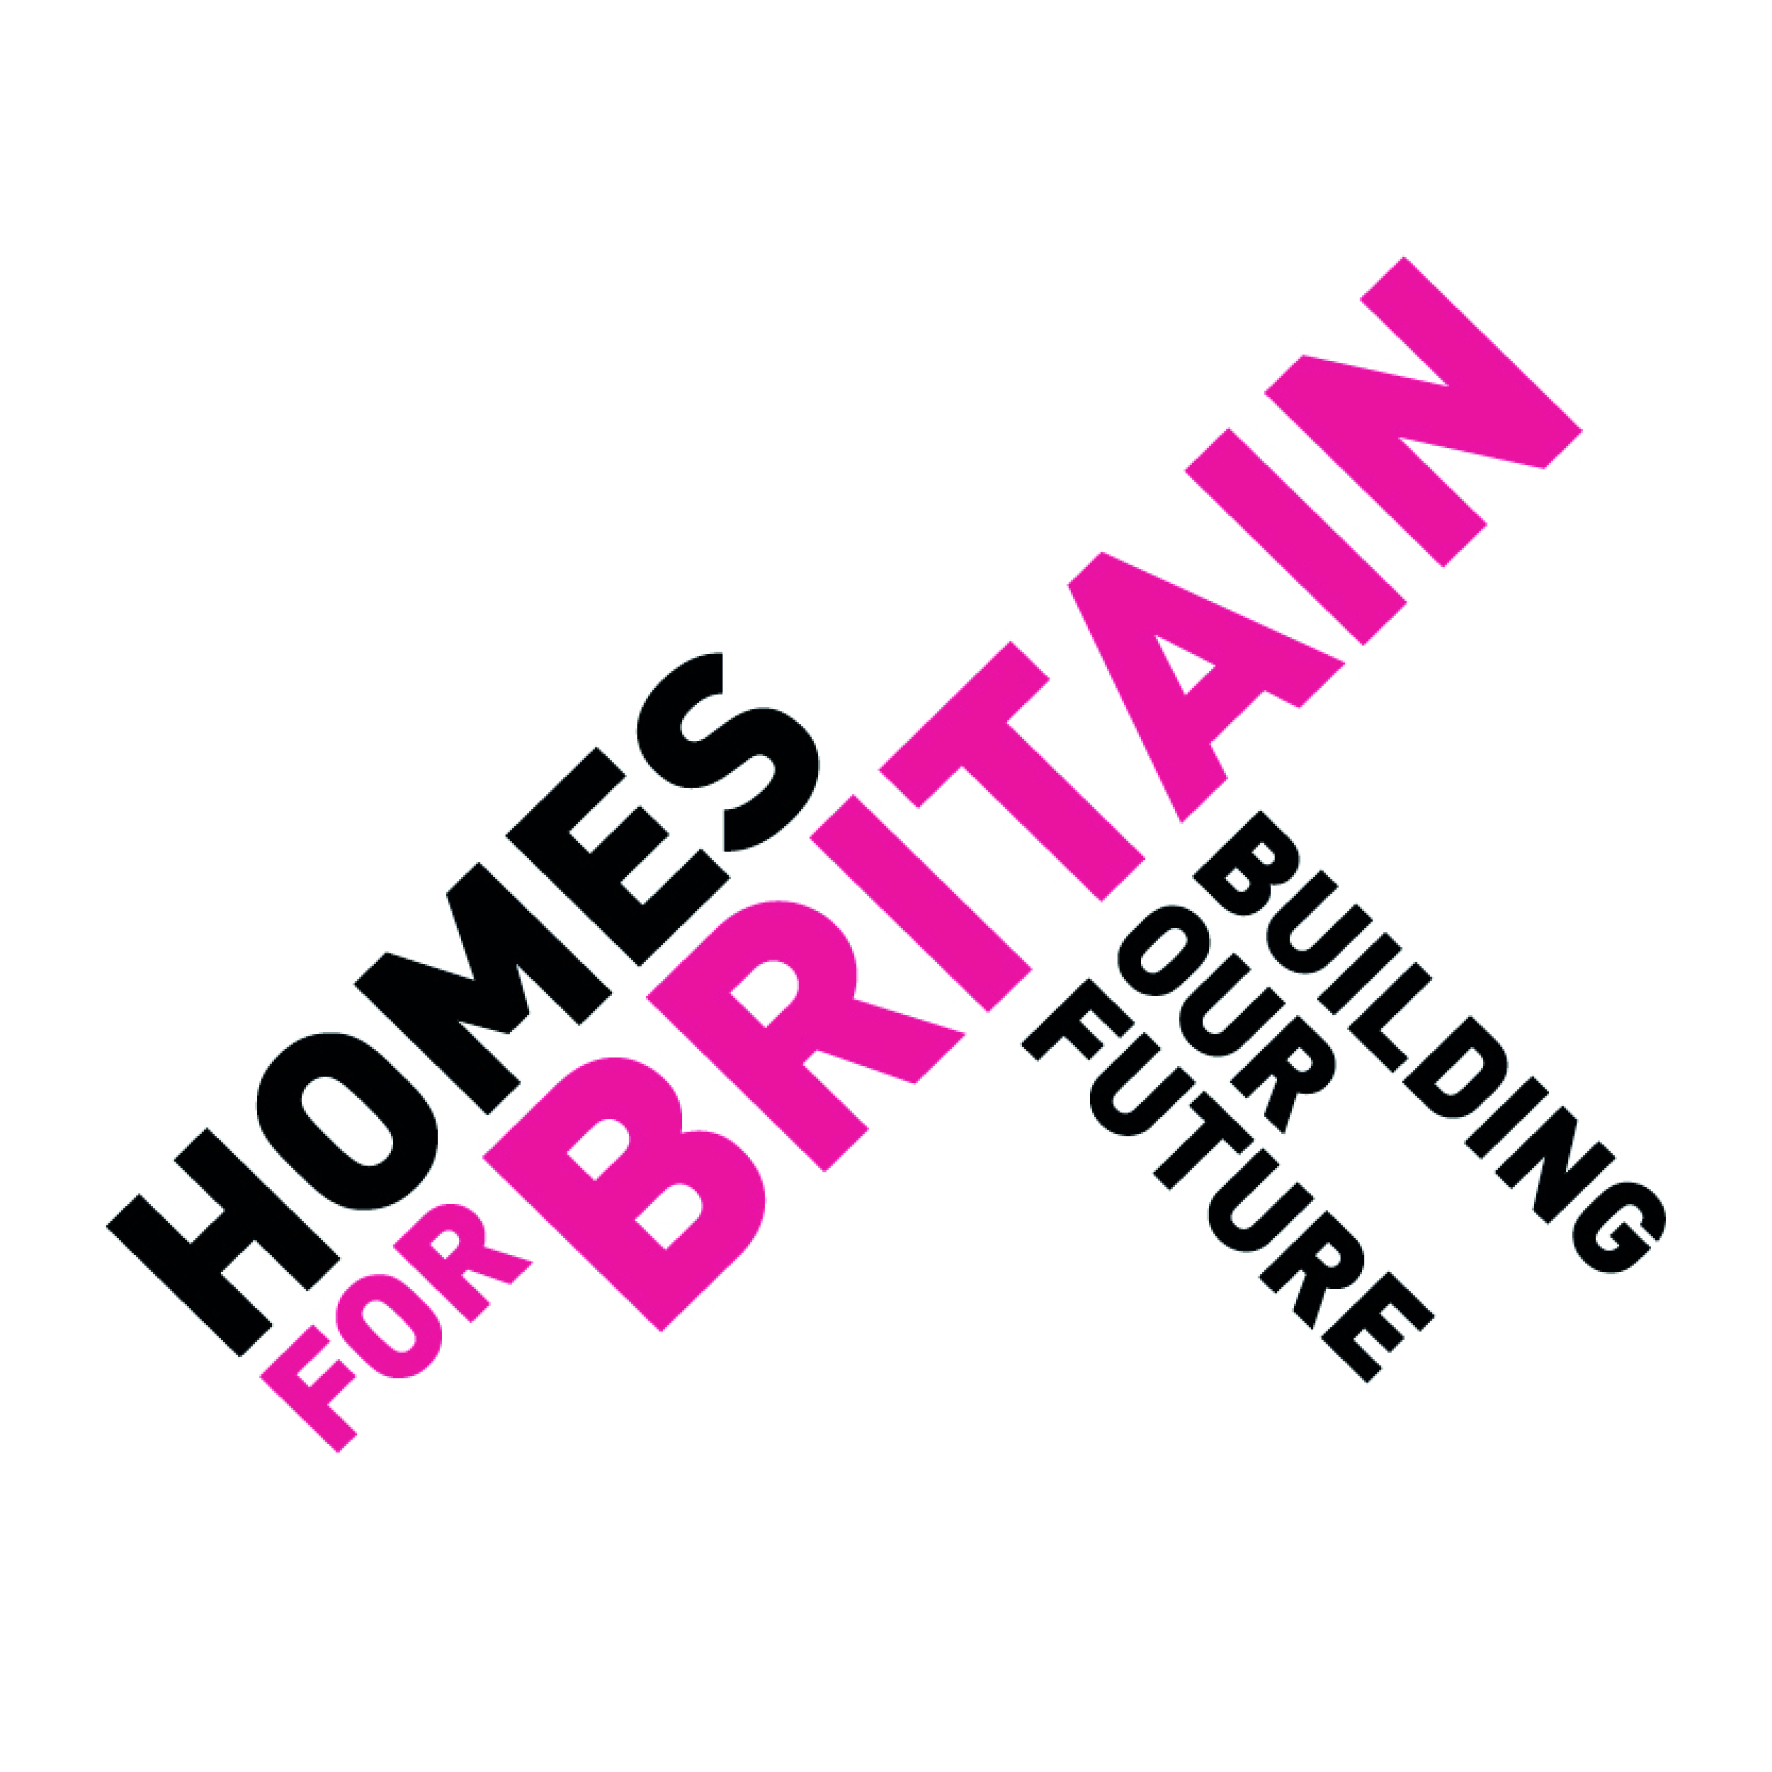 Homes for britain logo original